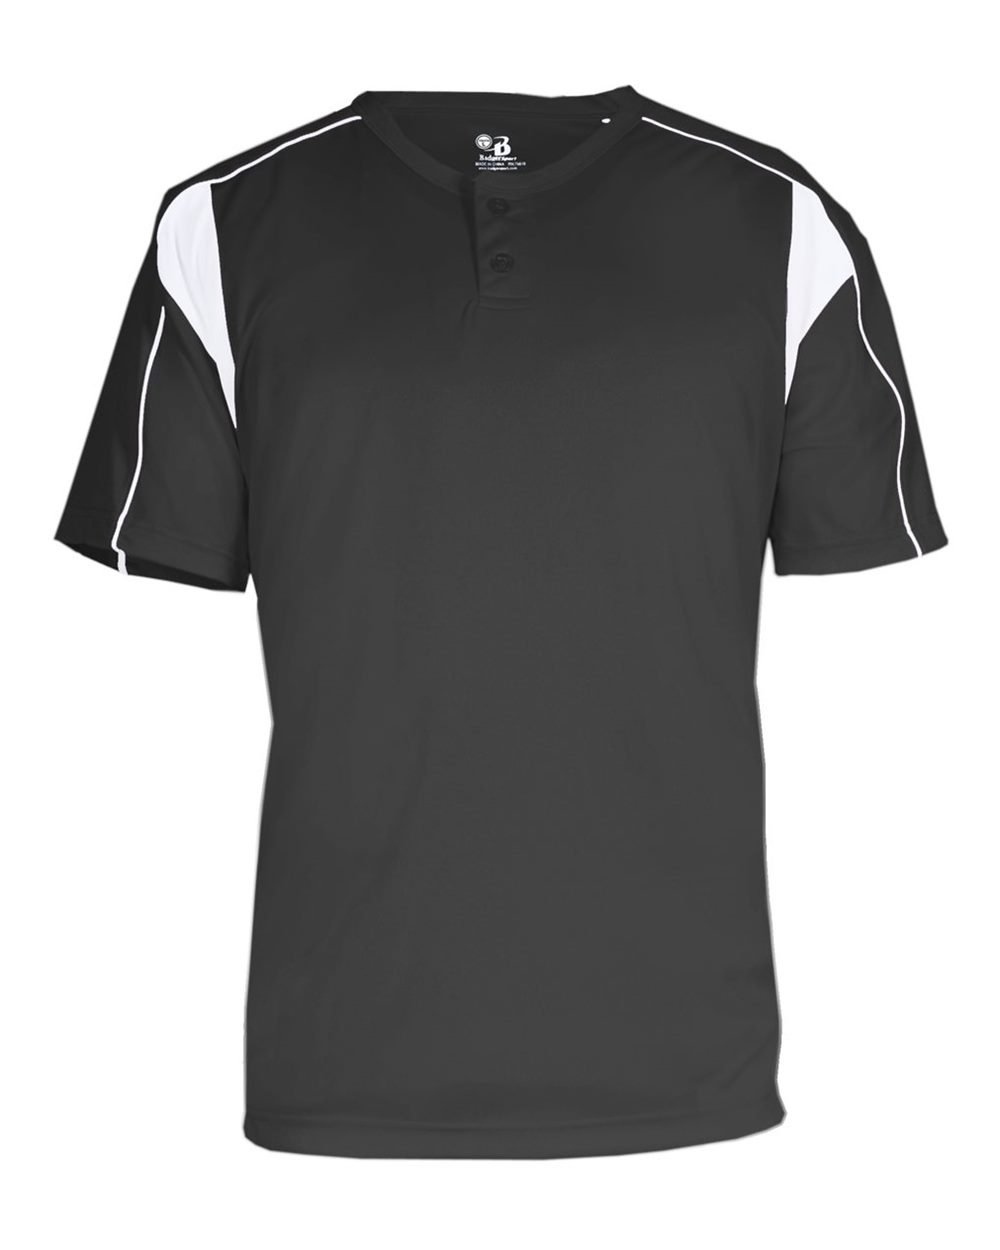 Badger 7937 BD Pro Plkt BSEBLL Tee B00E7O05LEグラファイト/ホワイト 4X-Large